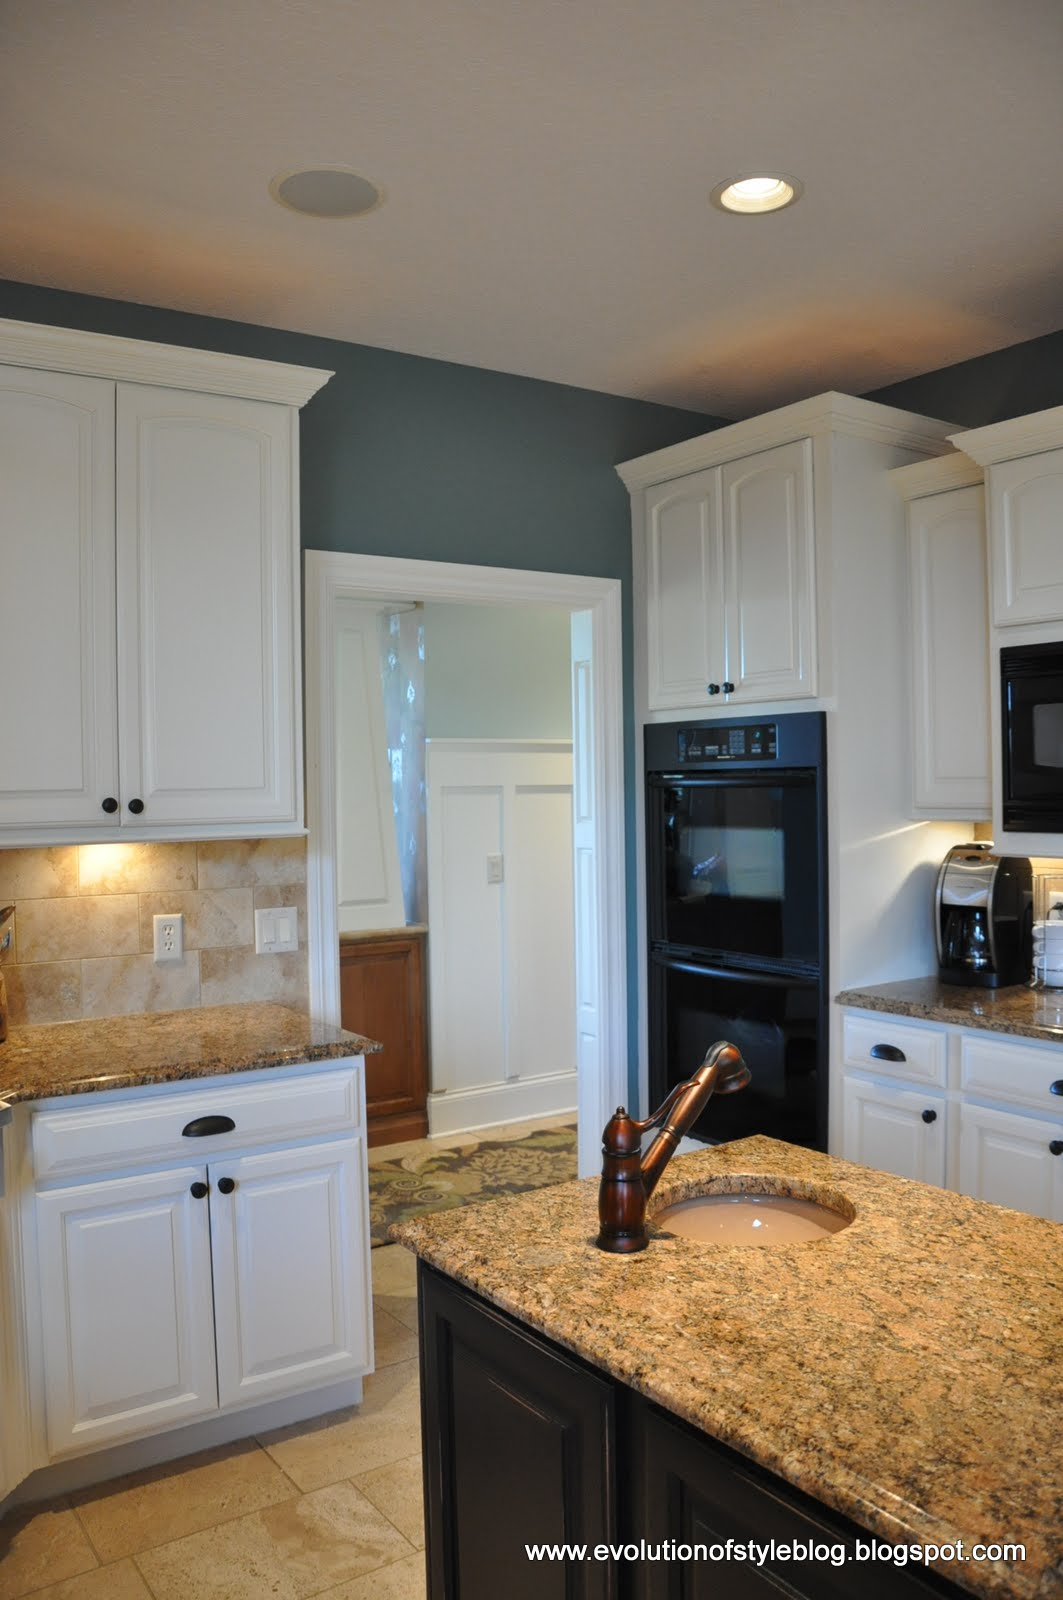 How To Paint Your Kitchen Cabinets (like A Pro. Cheap Kitchen Utensils. Kitchen Bath Collection. Mega Ninja Kitchen System. Design My Kitchen. Kitchen Cabinets Los Angeles. Royal Kitchen And Bath. State Street Kitchen. Small Tv For Kitchen